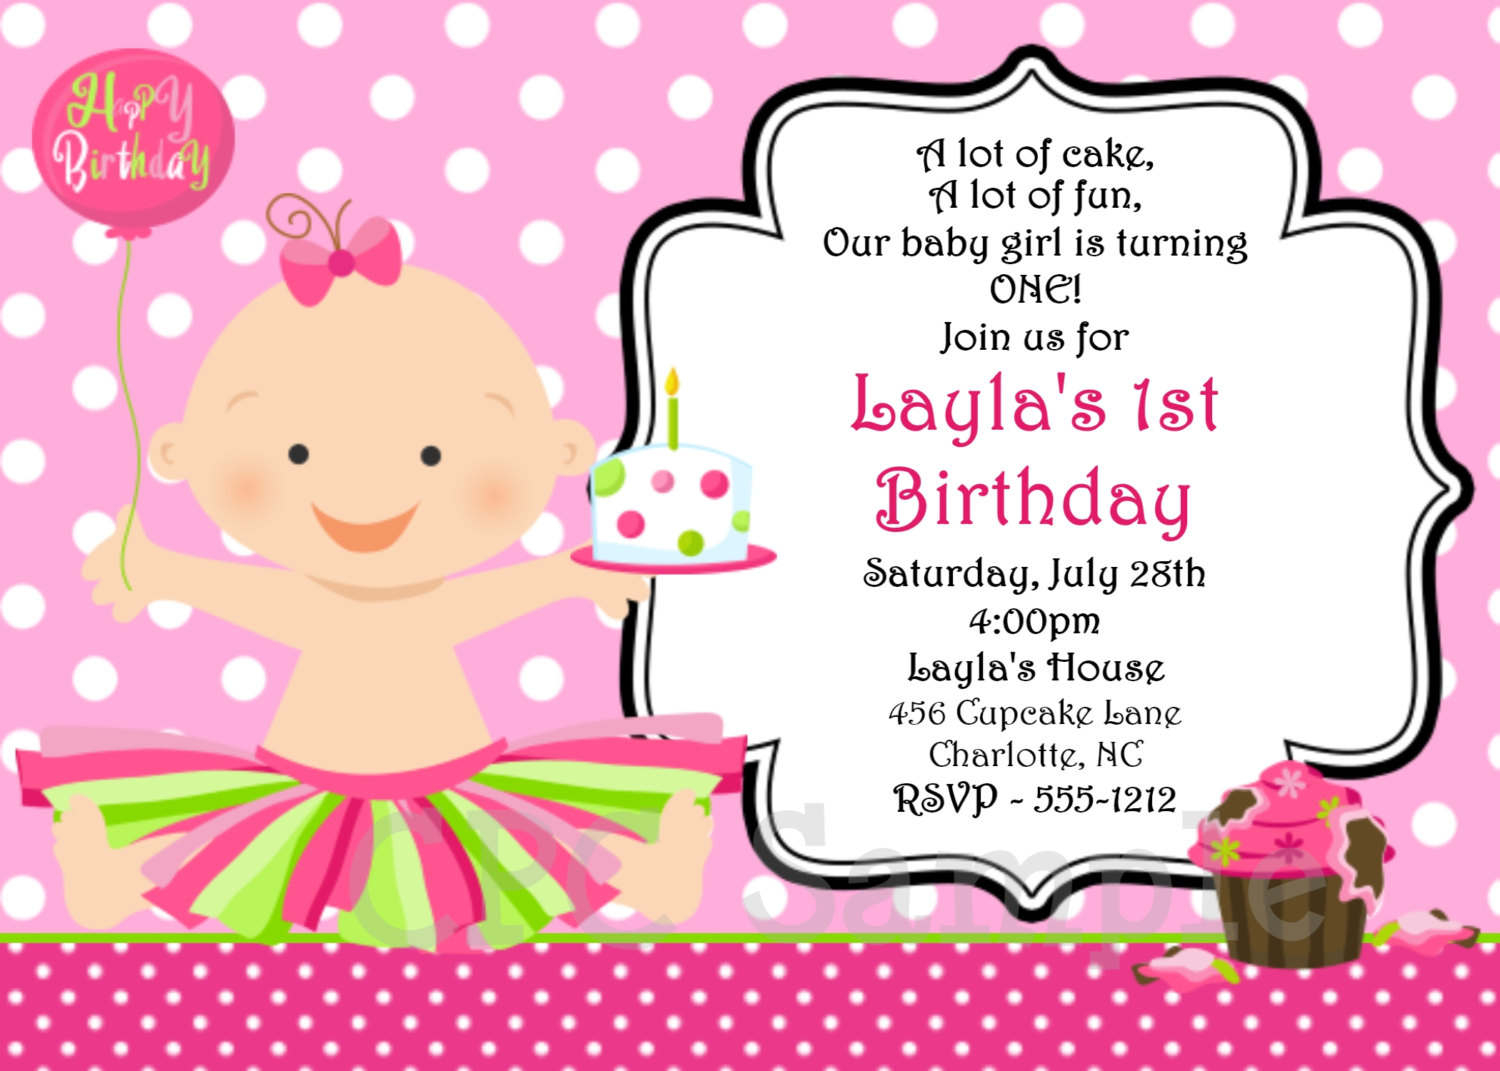 create birthday invitation with photo ; tips-for-choosing-birthday-invitation-with-alluring-layout-create-birthday-invitation-printable-silverlininginvitations